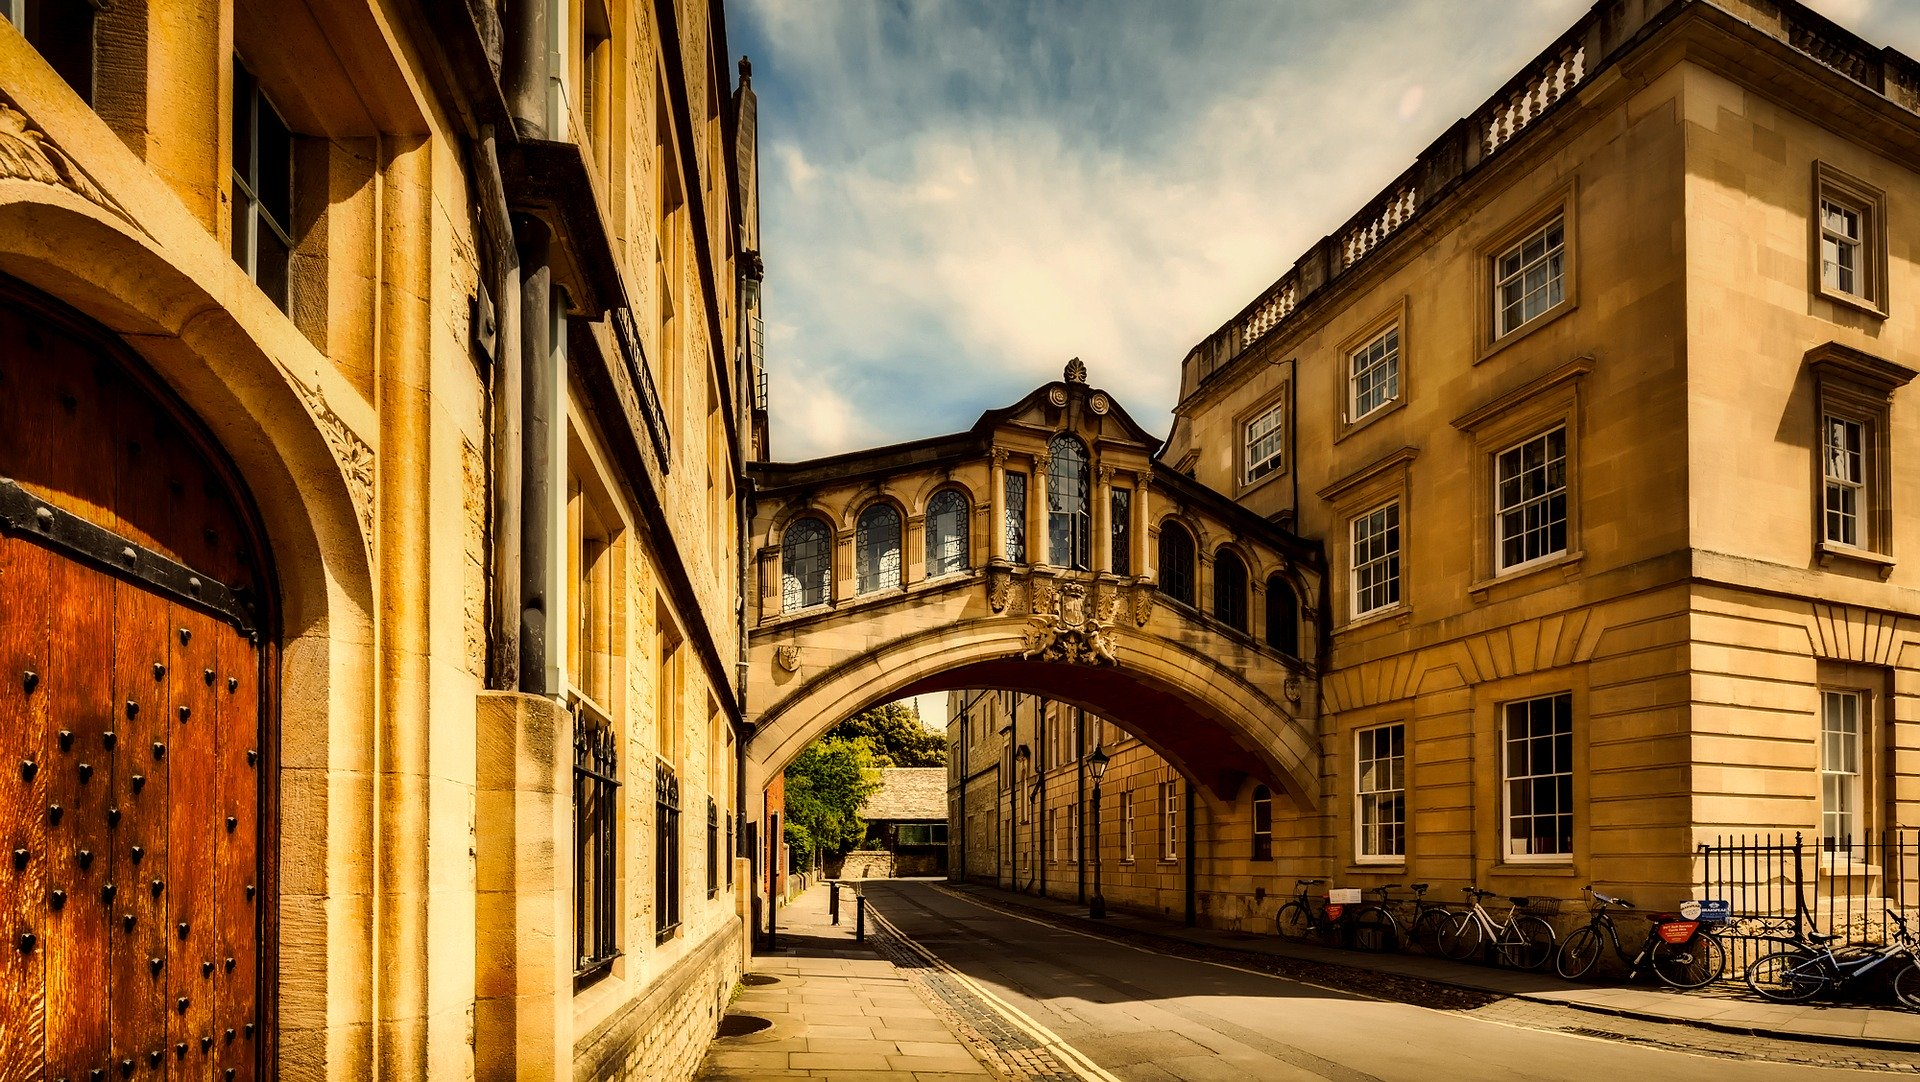 Golden image famous Oxford Sighs bridge